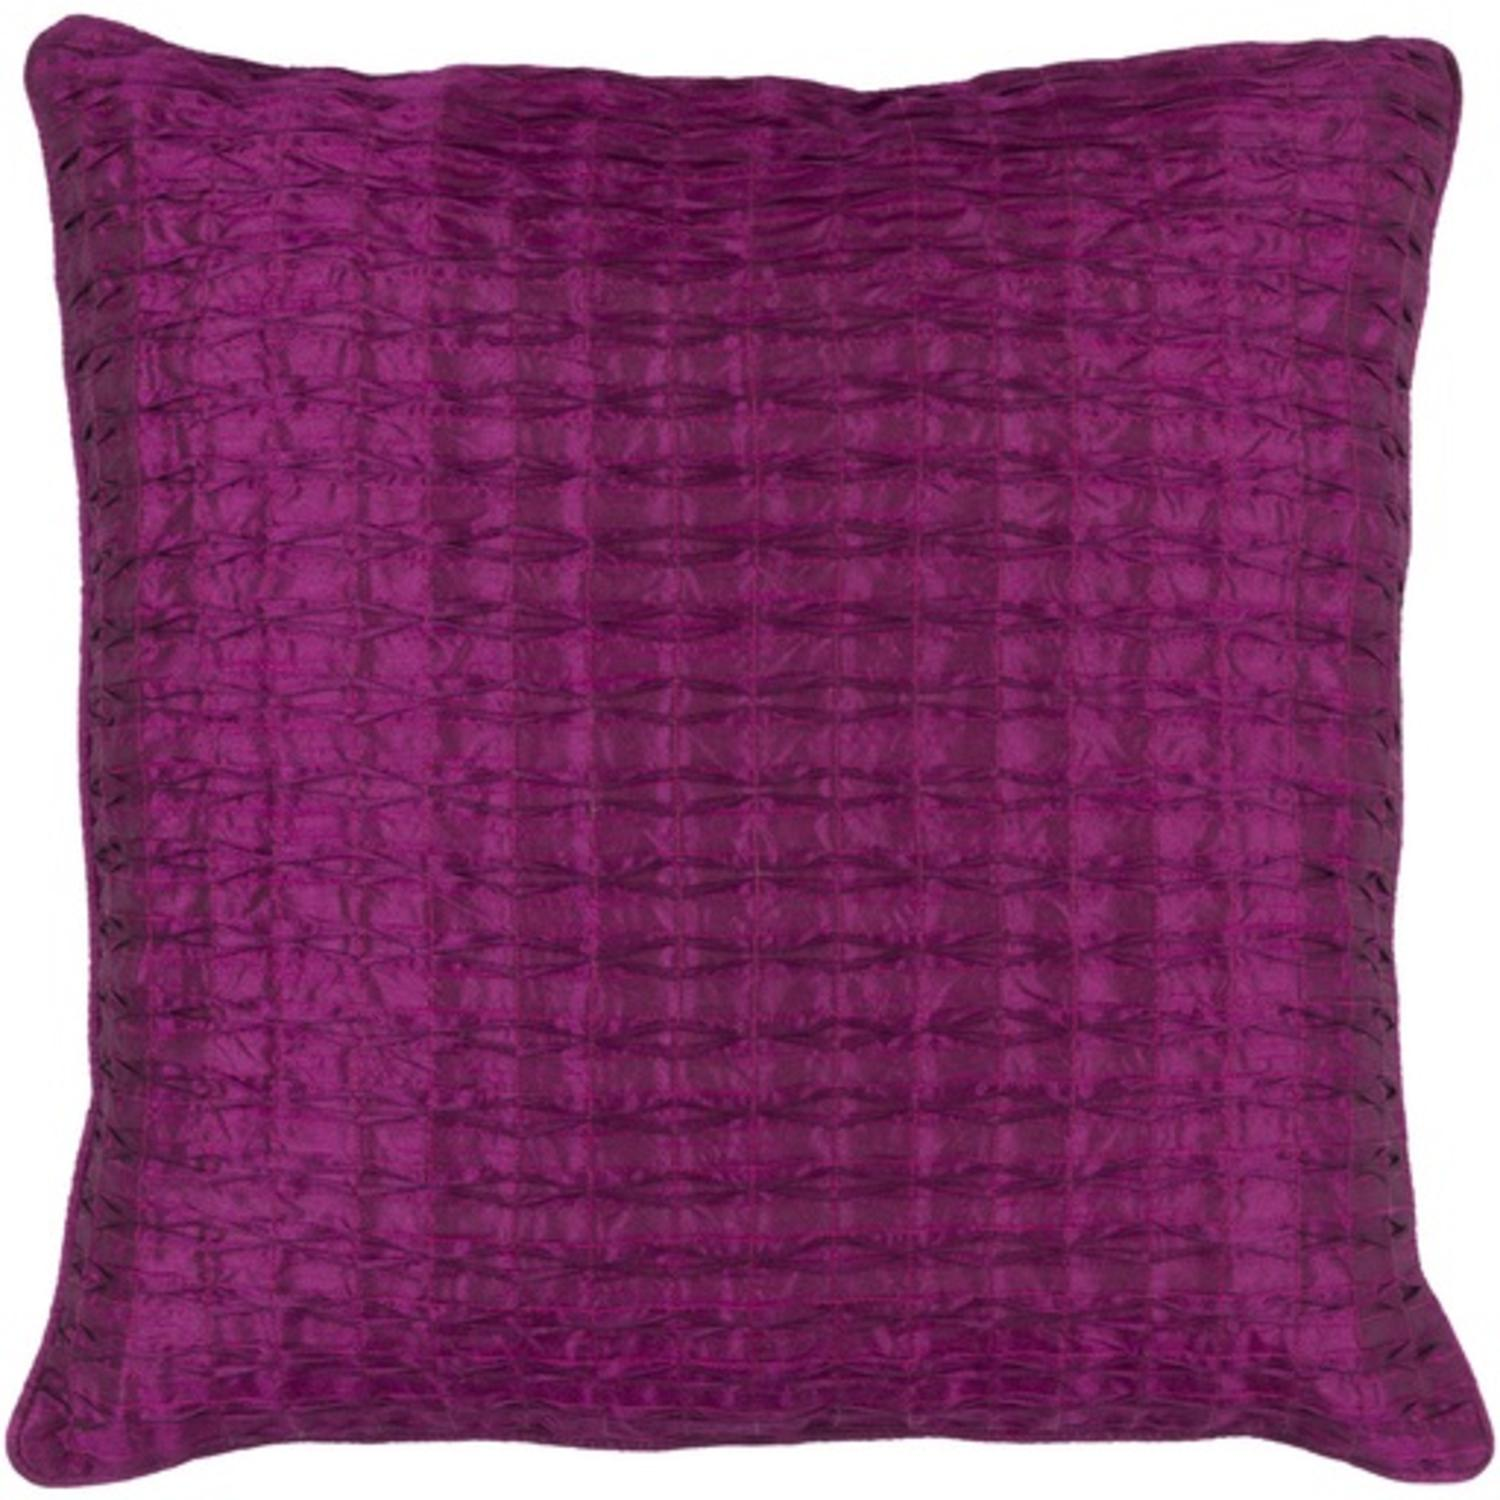 "18"" Decorative Fuchsia Purple Quilted Linens Throw Pillow"